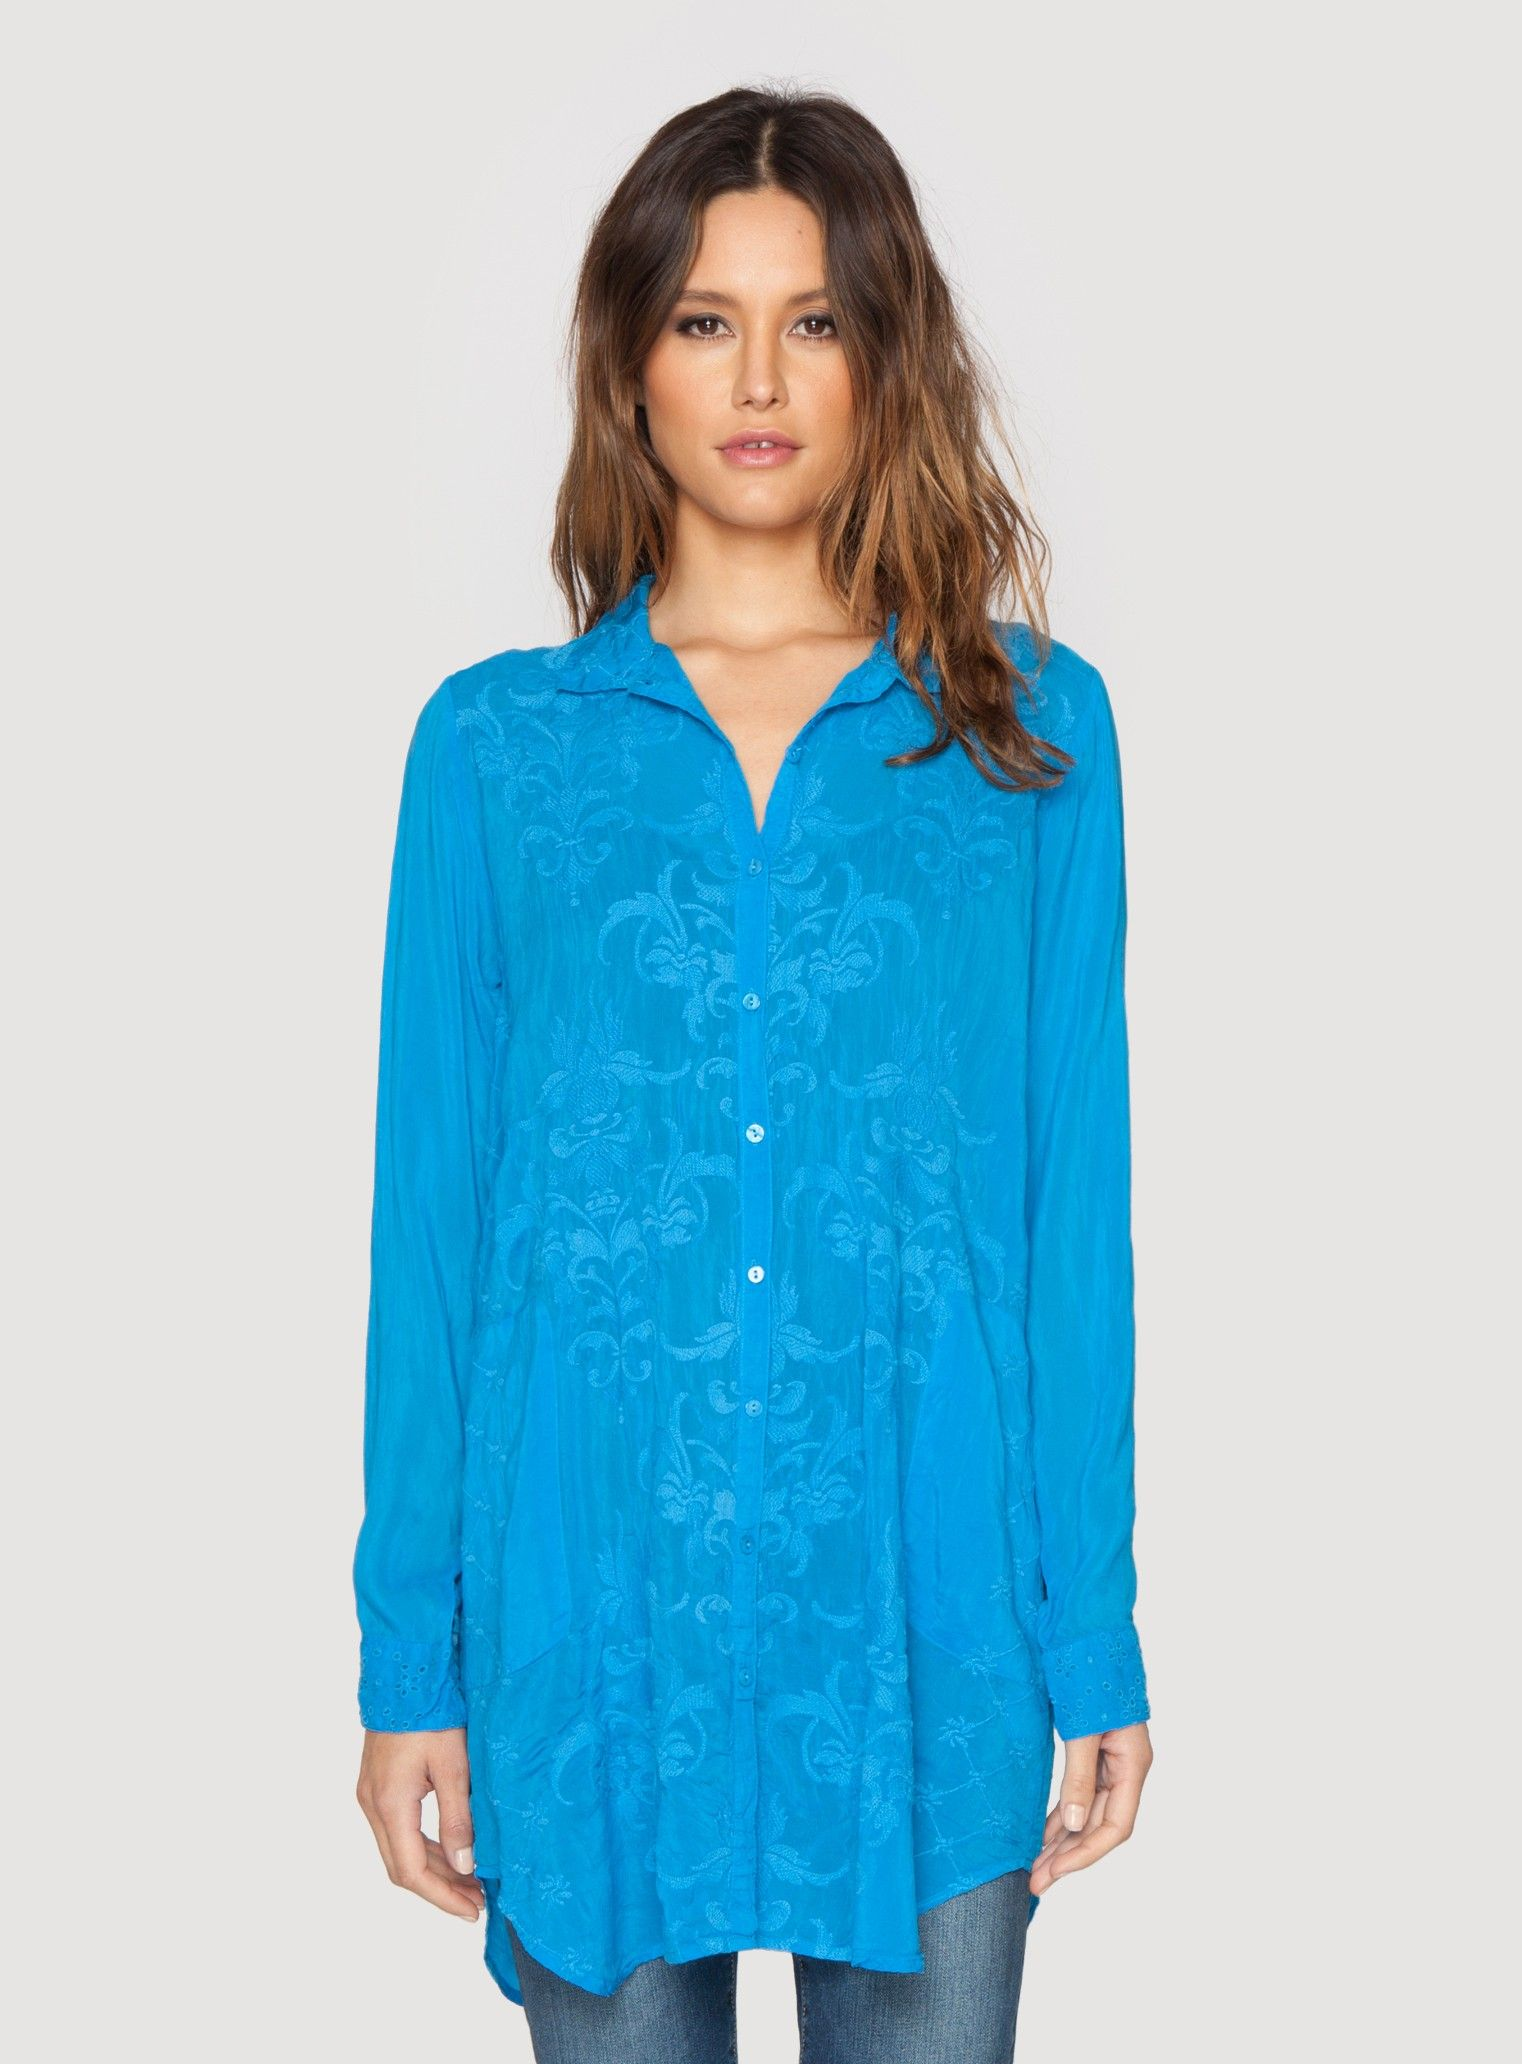 fbdfdc07417 Johnny Was Clothing Plus Size Issy Button Down Blouse in Cobalt Blue ...